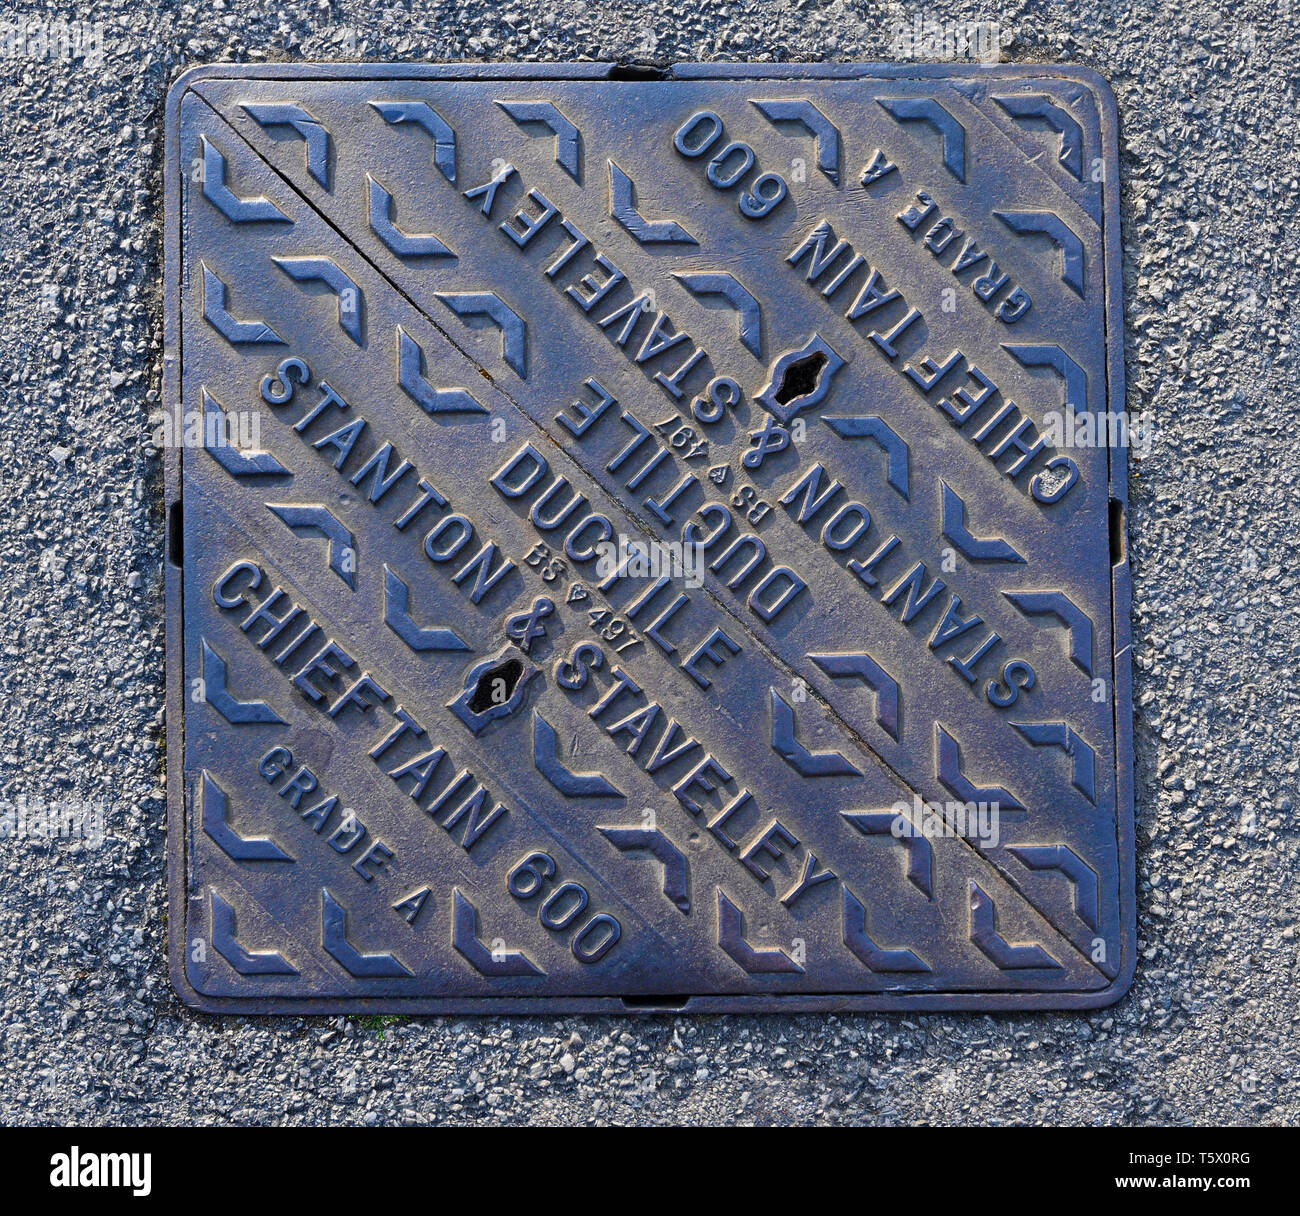 Cast Iron Inspection Chamber Cover. Stanton & Staveley. Ductile. Chieftain 600. Grade A. BS 497. - Stock Image